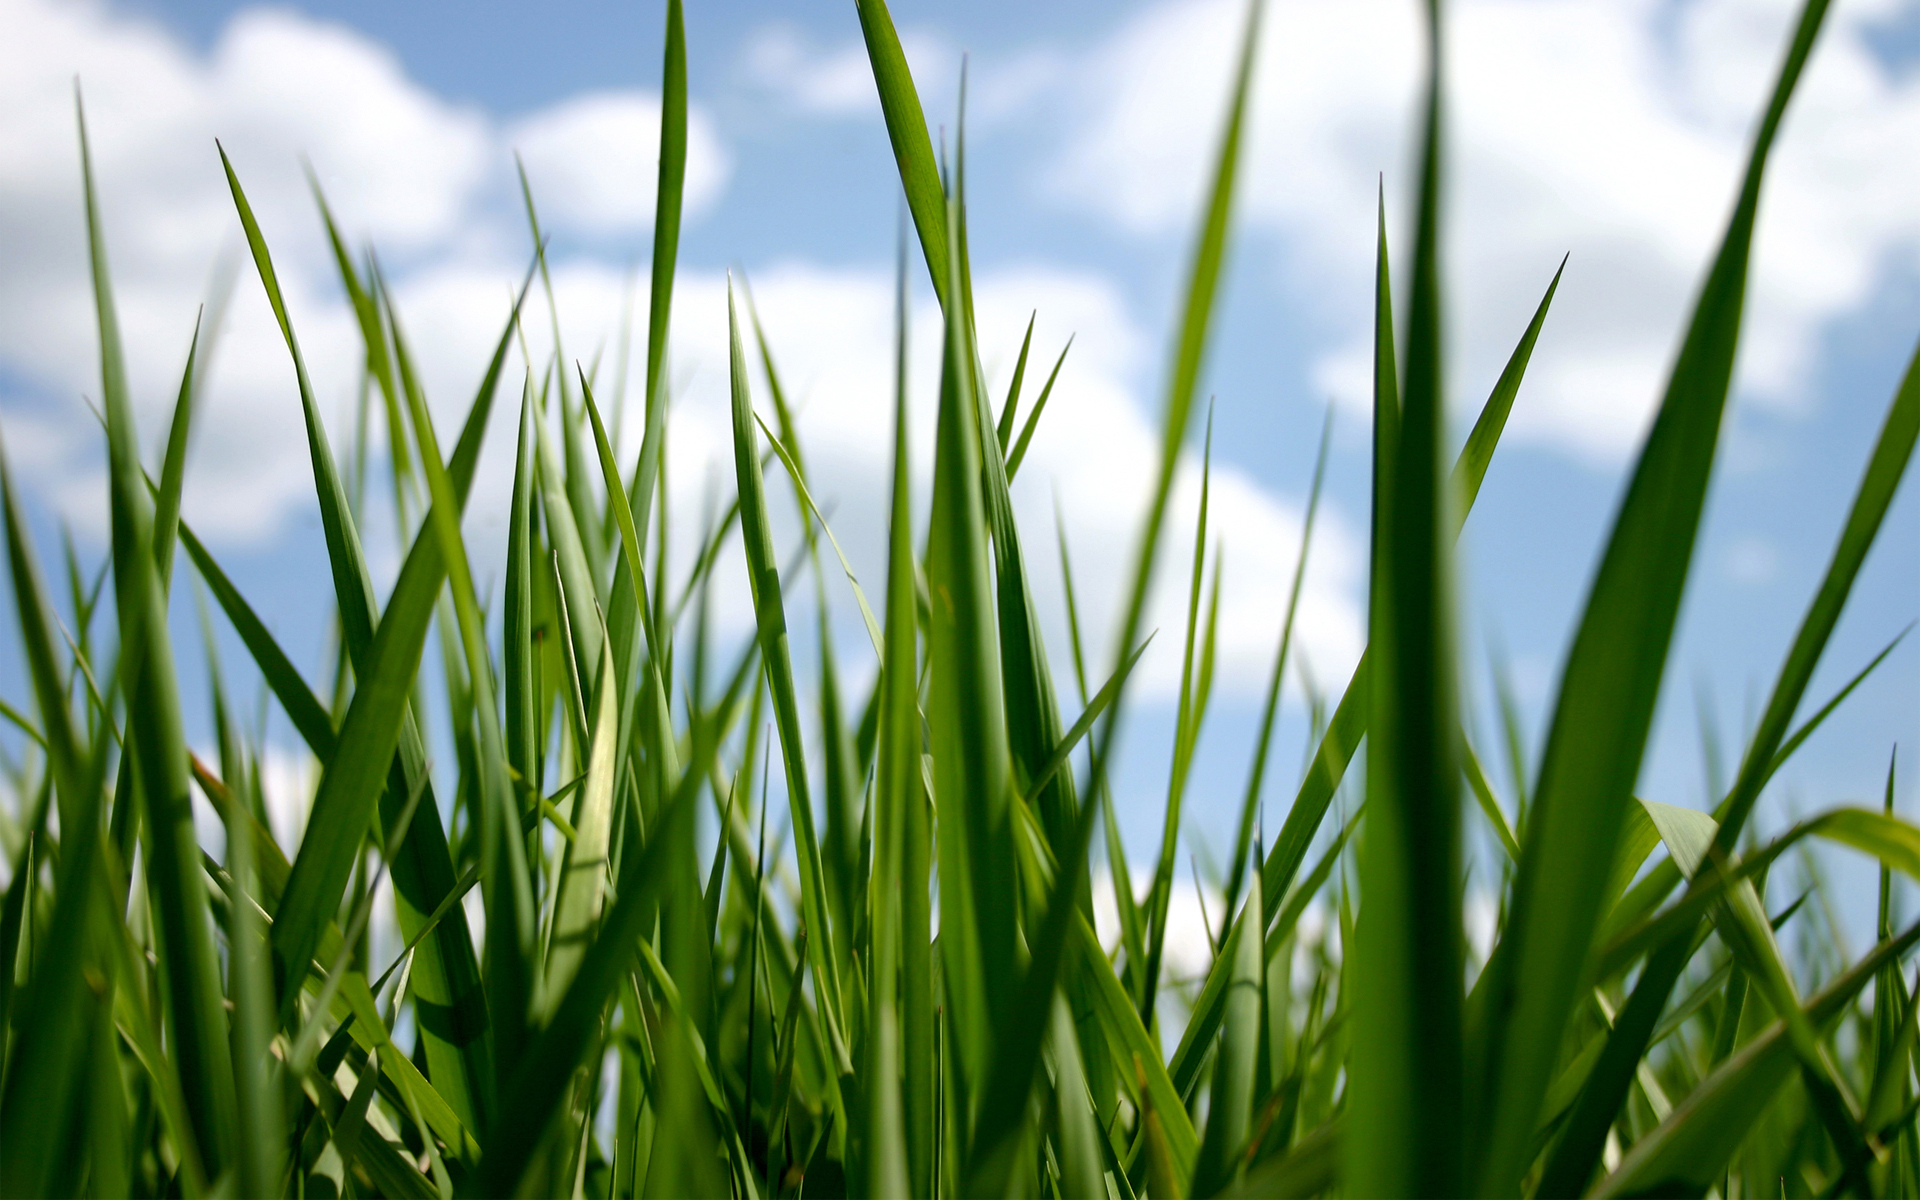 hd grass wallpaper